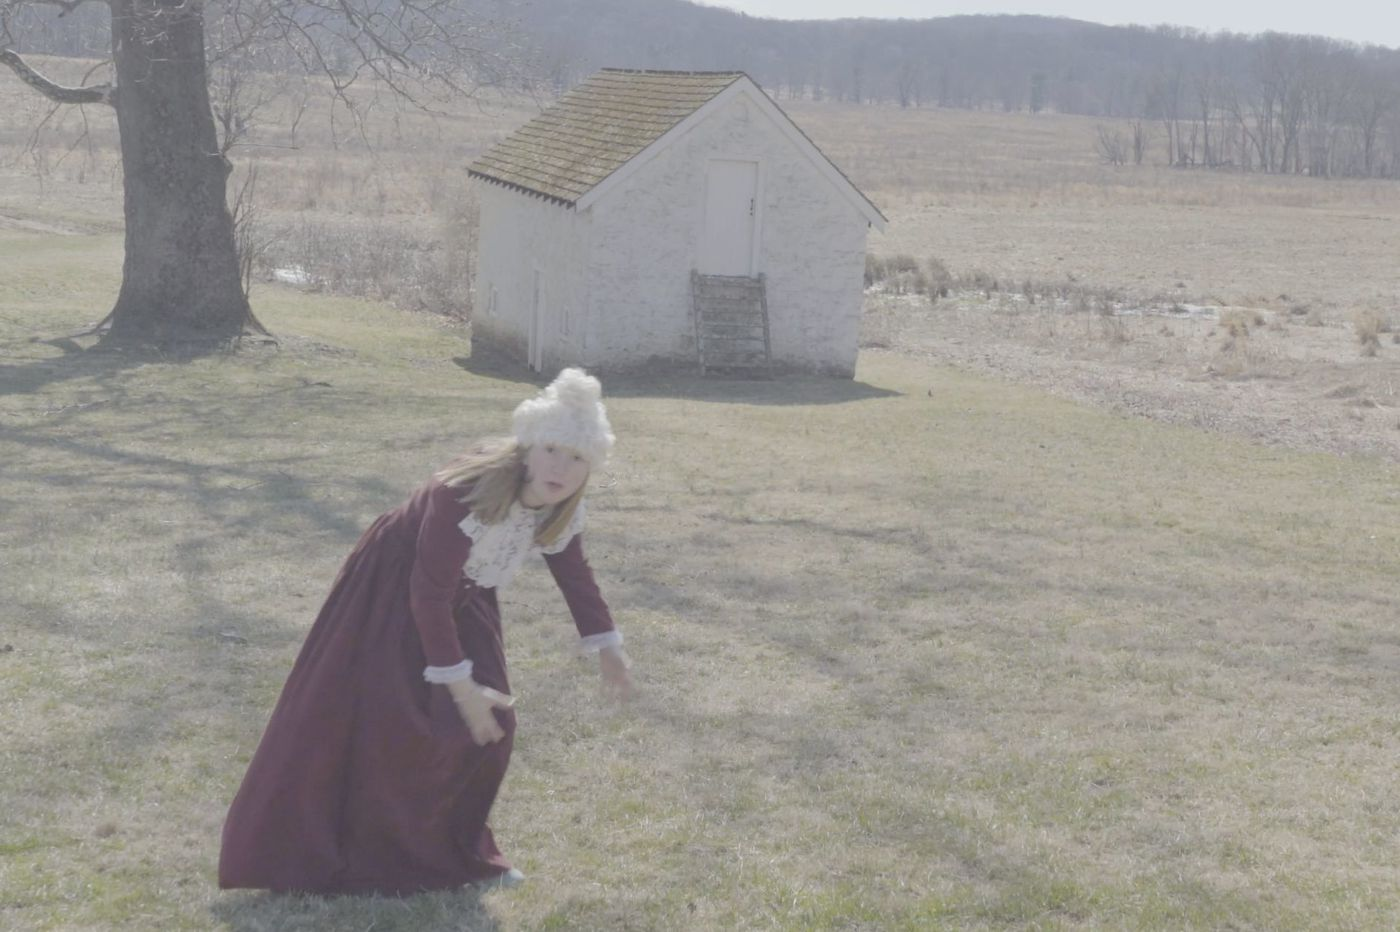 Comedian gives women of Valley Forge a voice — in a Rocky accent